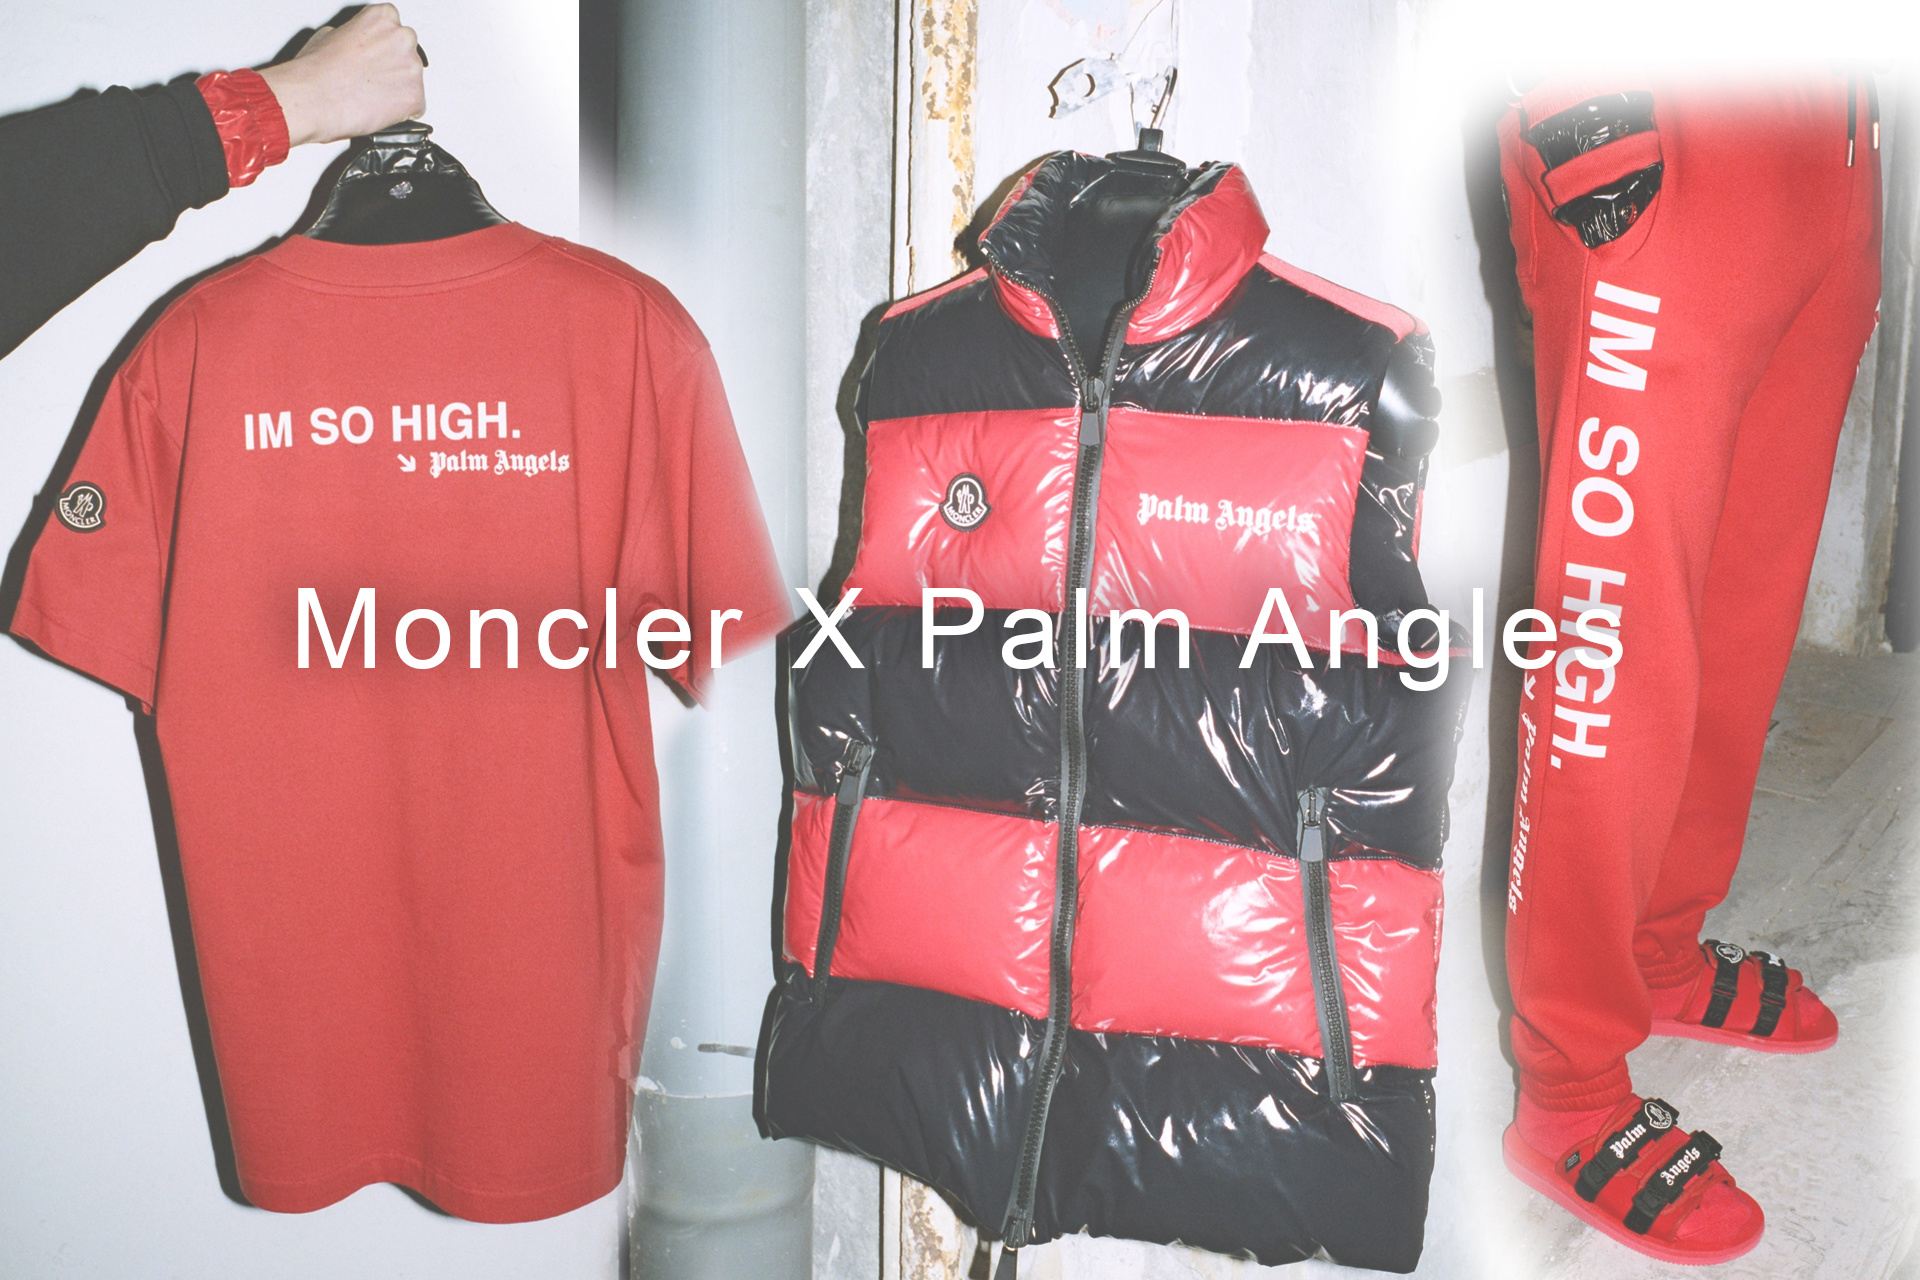 Moncler x Palm Angels